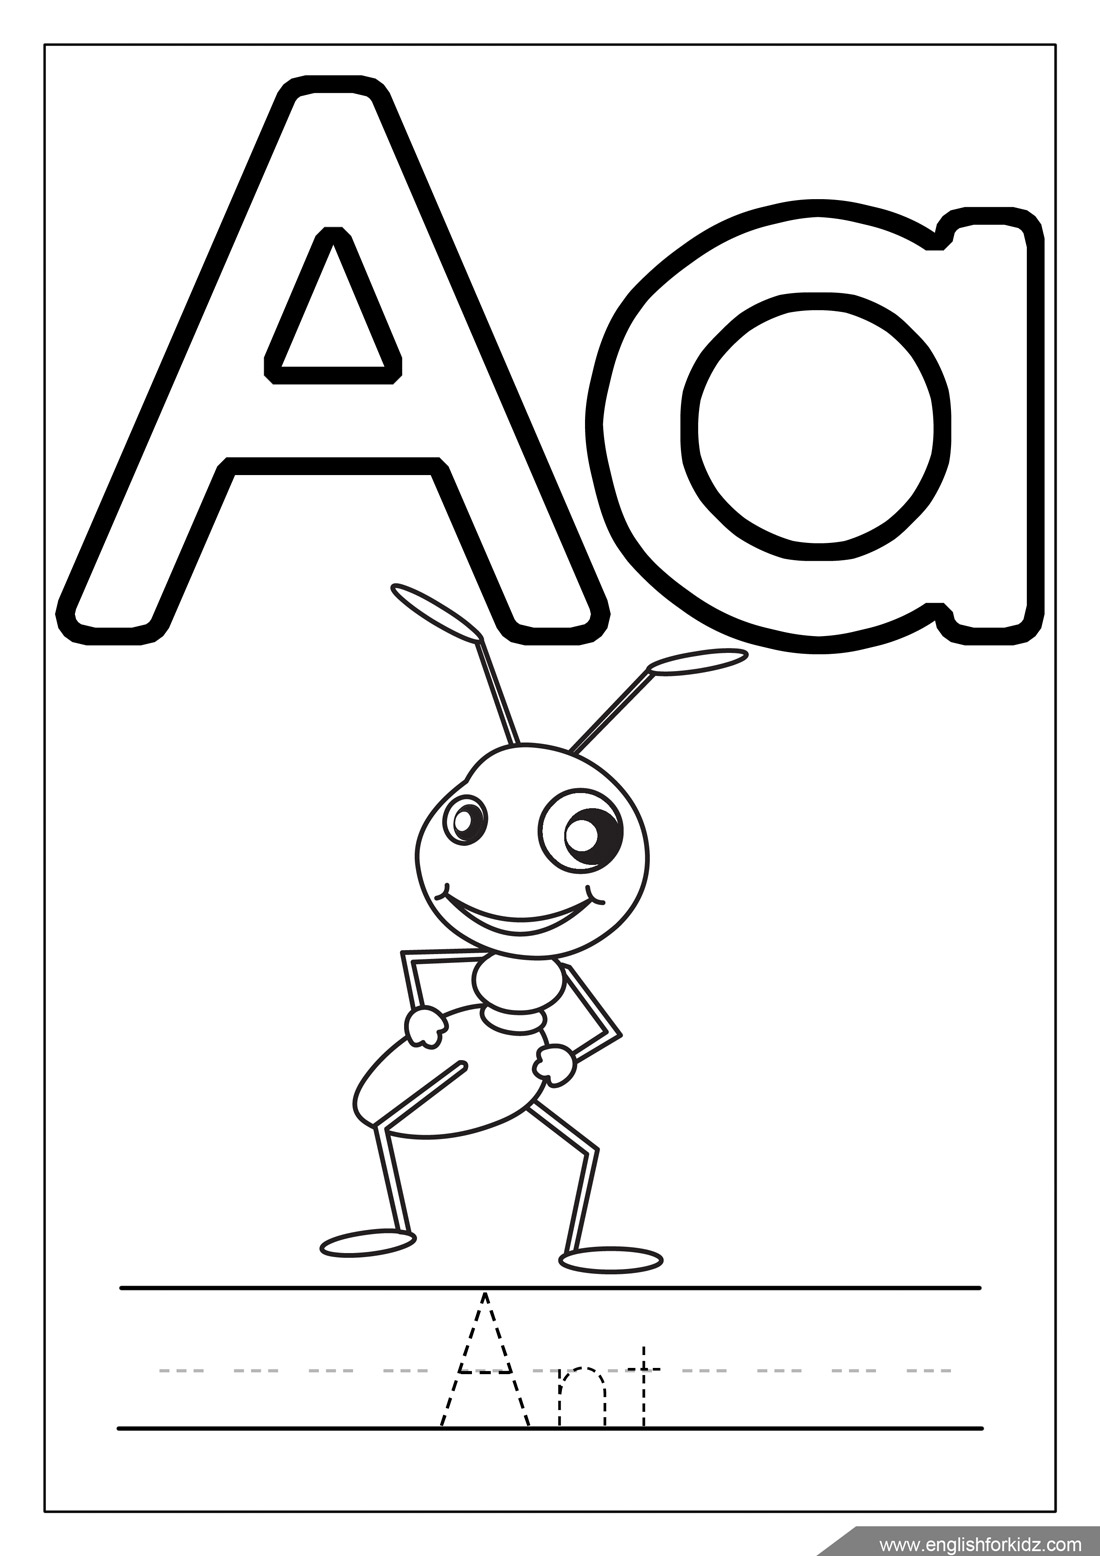 a to z alphabet coloring pages printable alphabet coloring pages letters a j alphabet coloring a z pages to